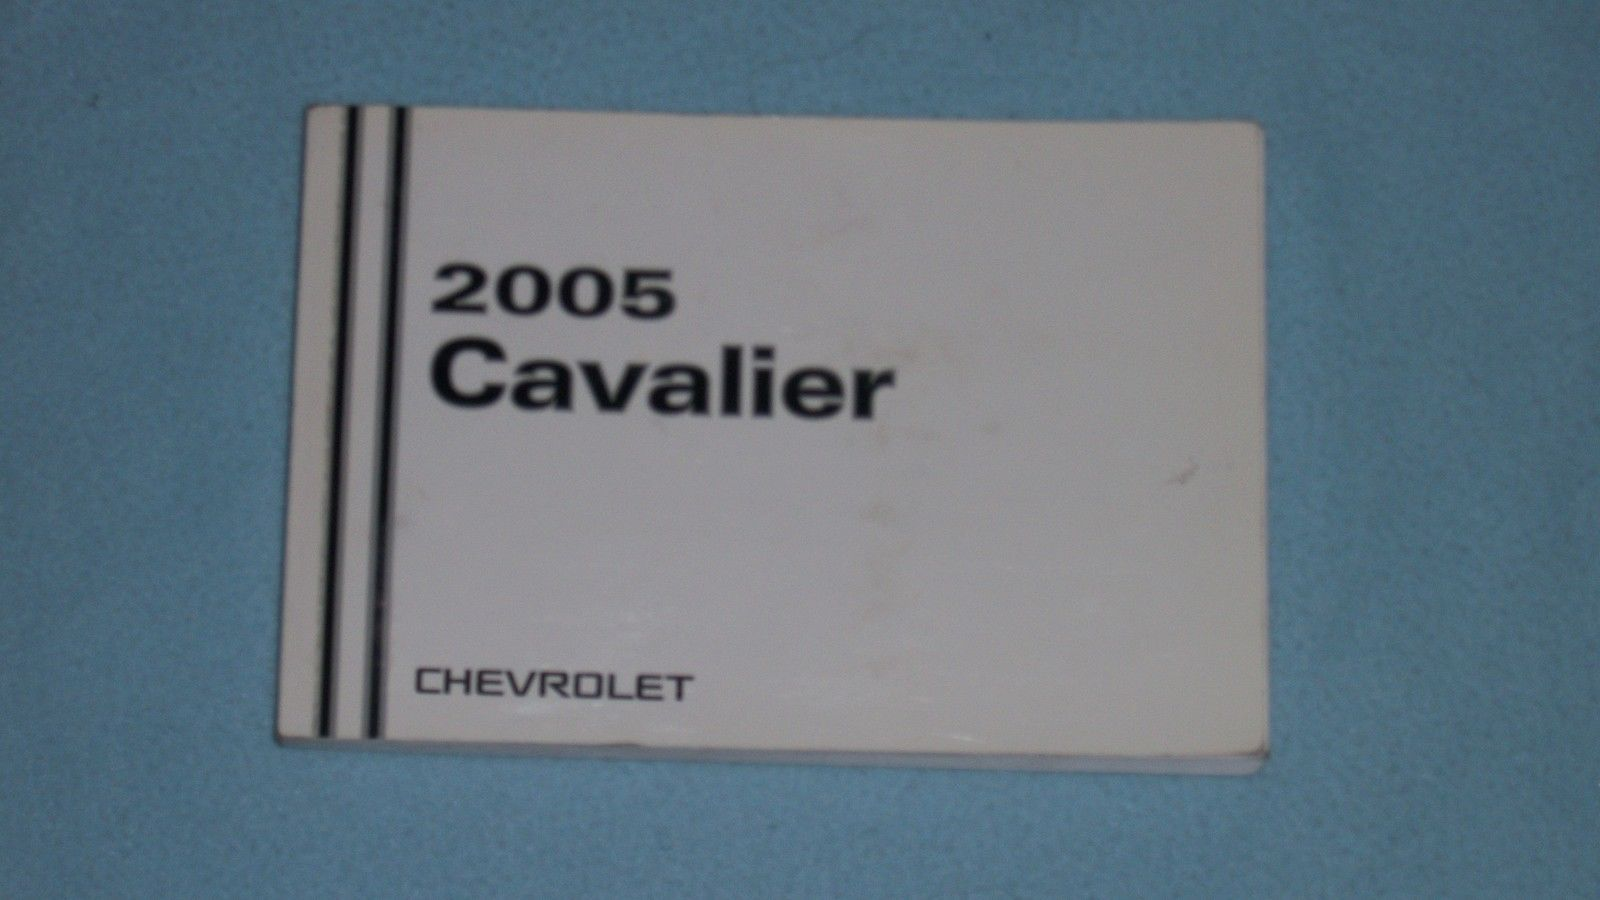 2005 chevrolet cavalier owners manual and similar items rh bonanza com 1998 Chevy Cavalier Owner's Manual 2005 Cavalier Manual Black